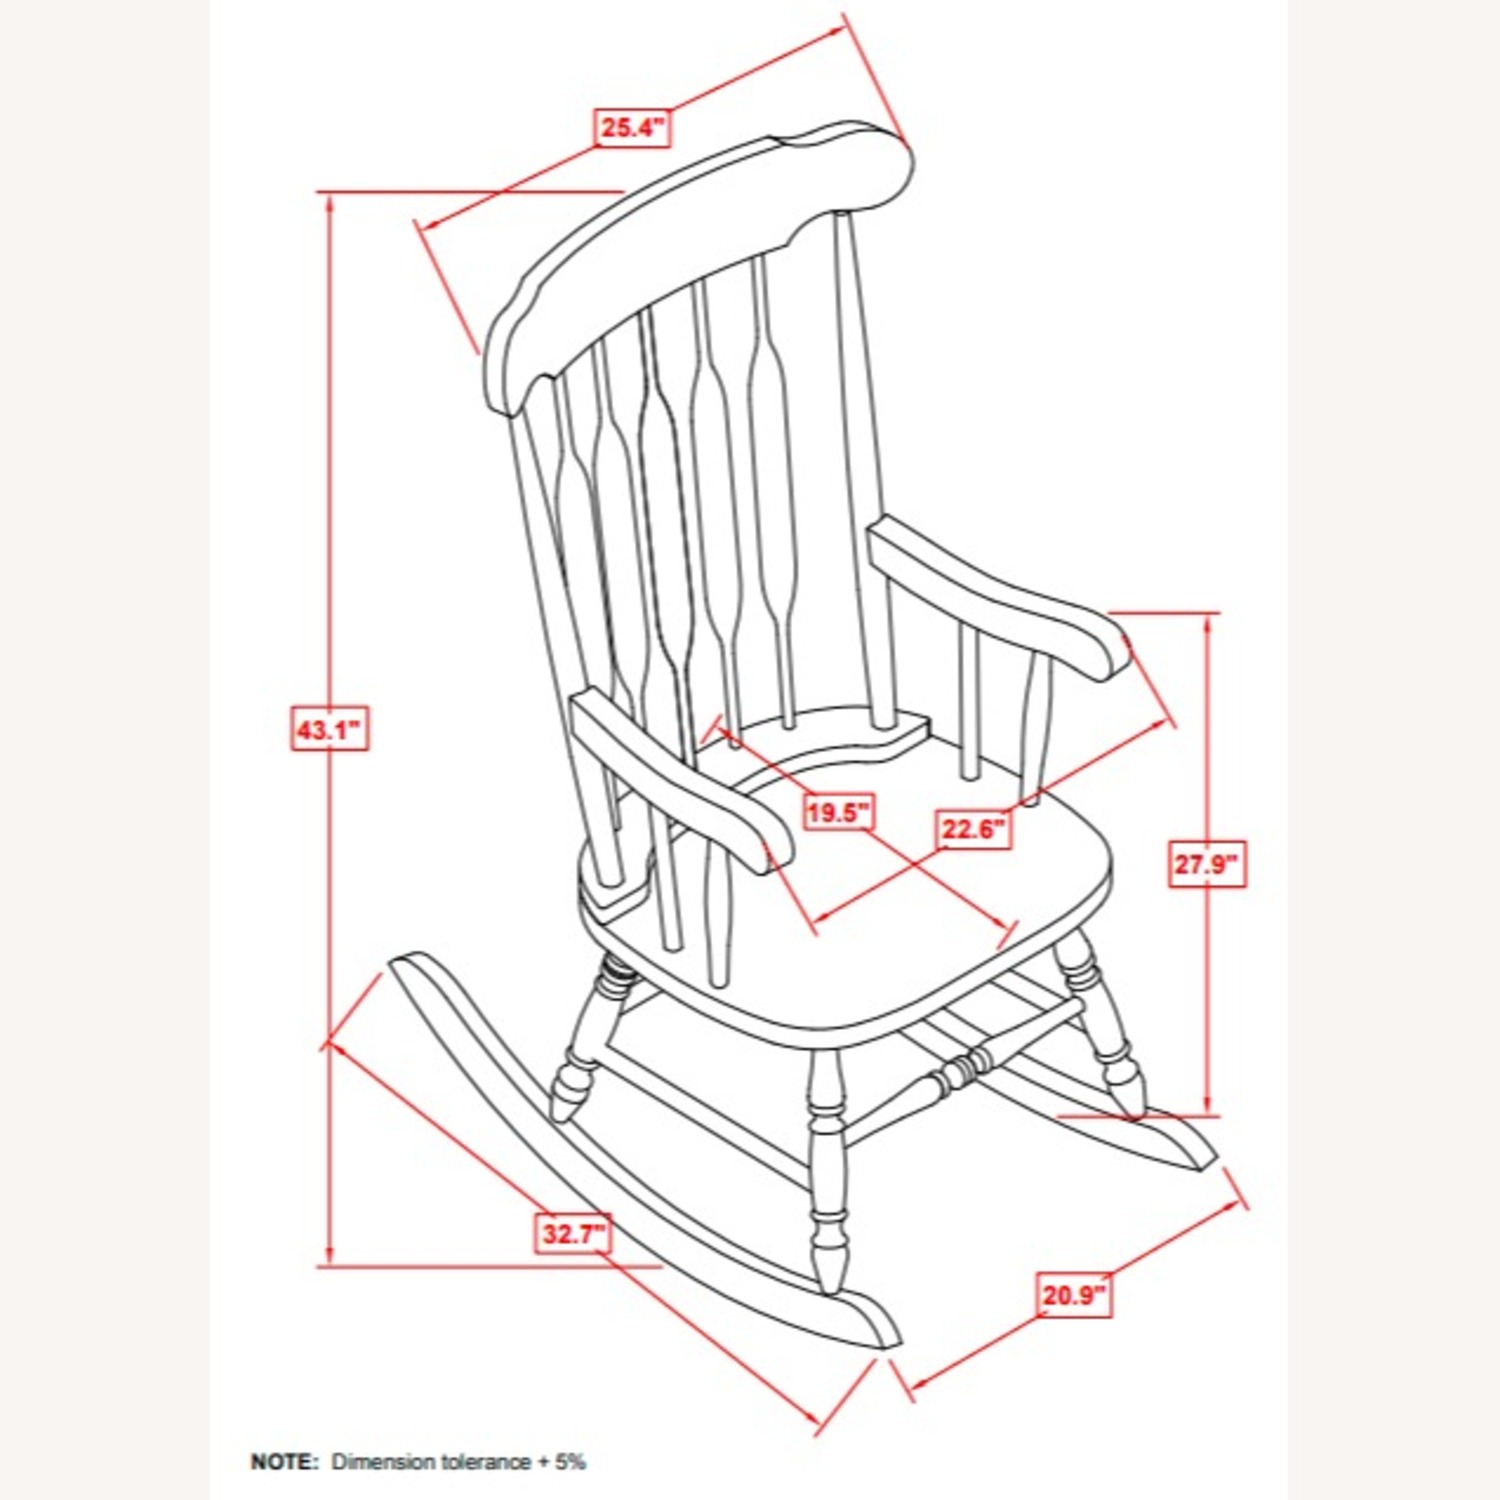 Rocking Chair In White Rubberwood Construction - image-2